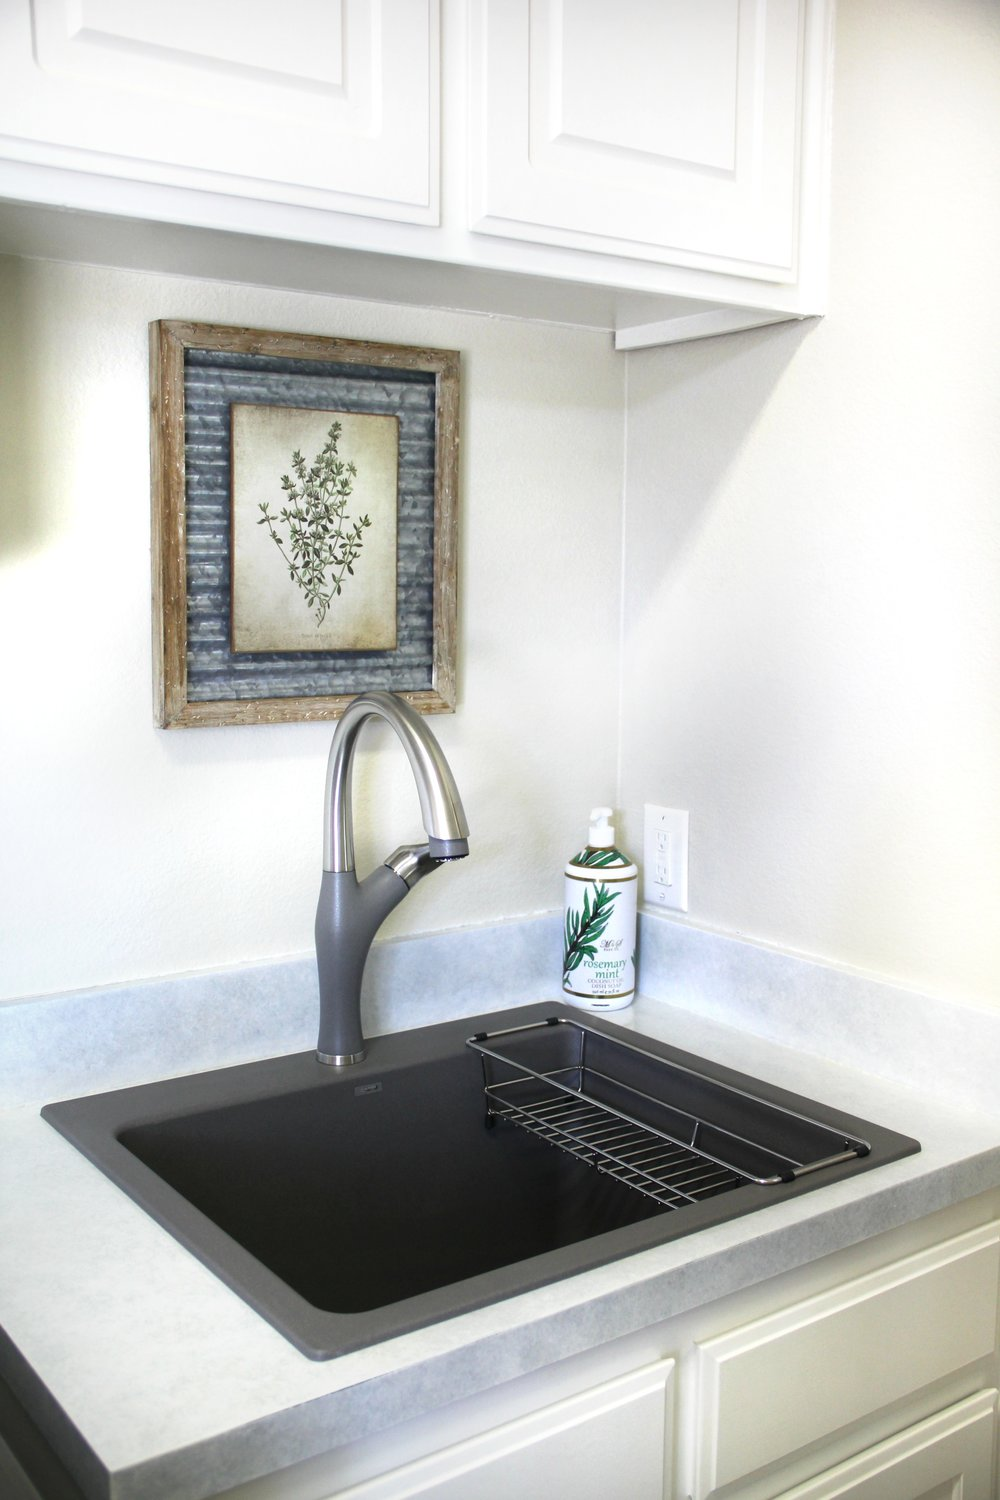 BLANCO LIVEN SINK IN METALLIC GRAY